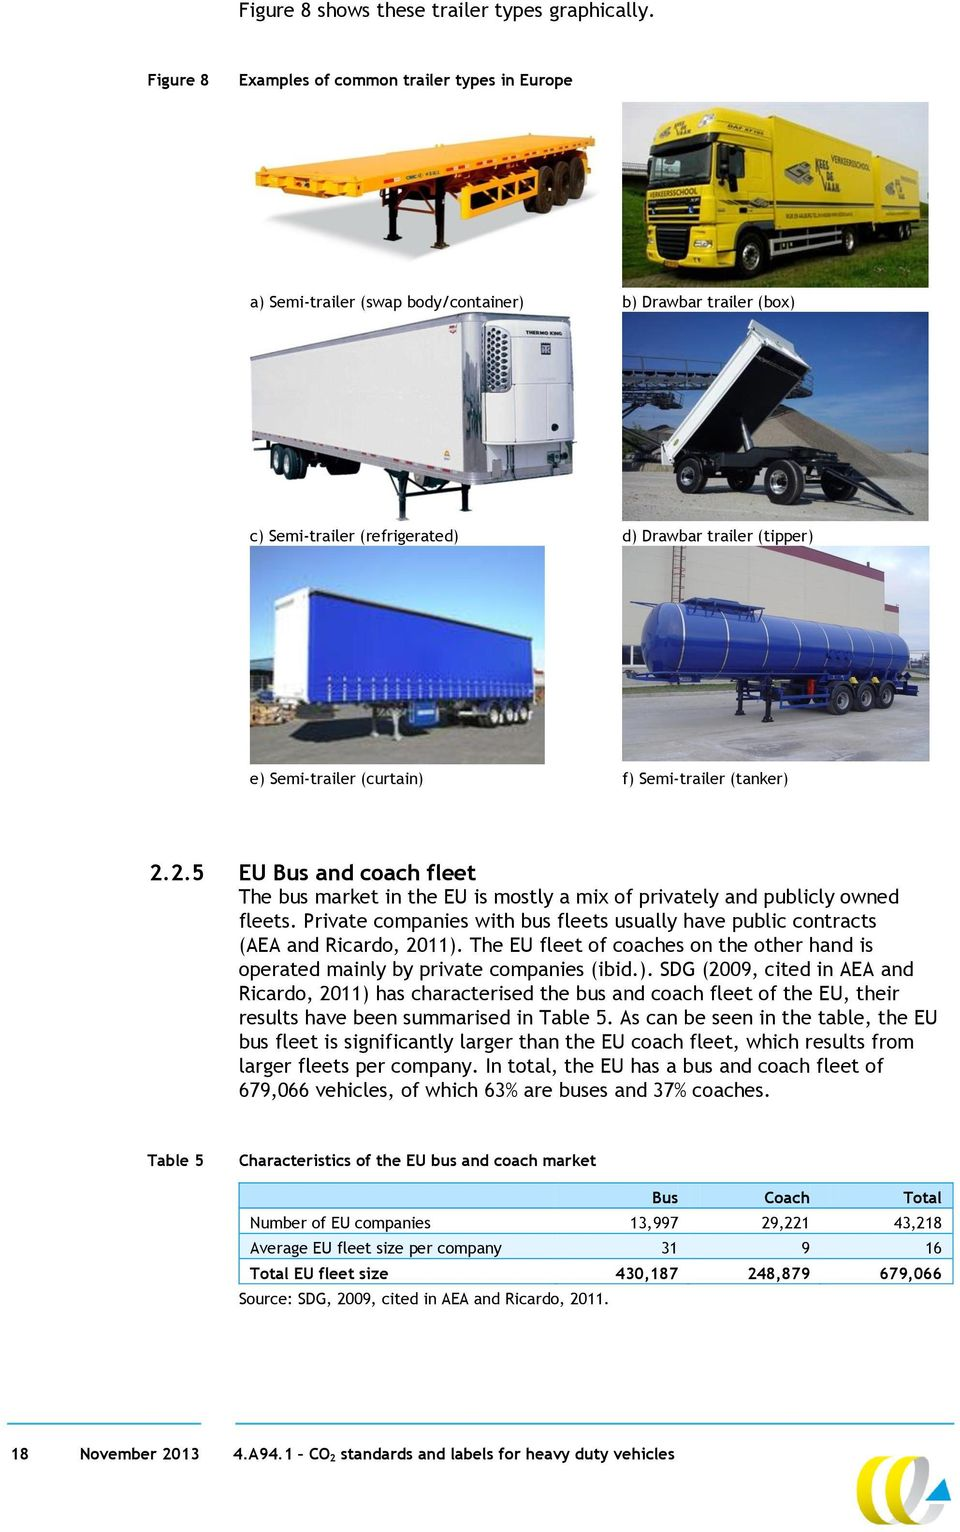 f) Semi-trailer (tanker) 2.2.5 EU Bus and coach fleet The bus market in the EU is mostly a mix of privately and publicly owned fleets.